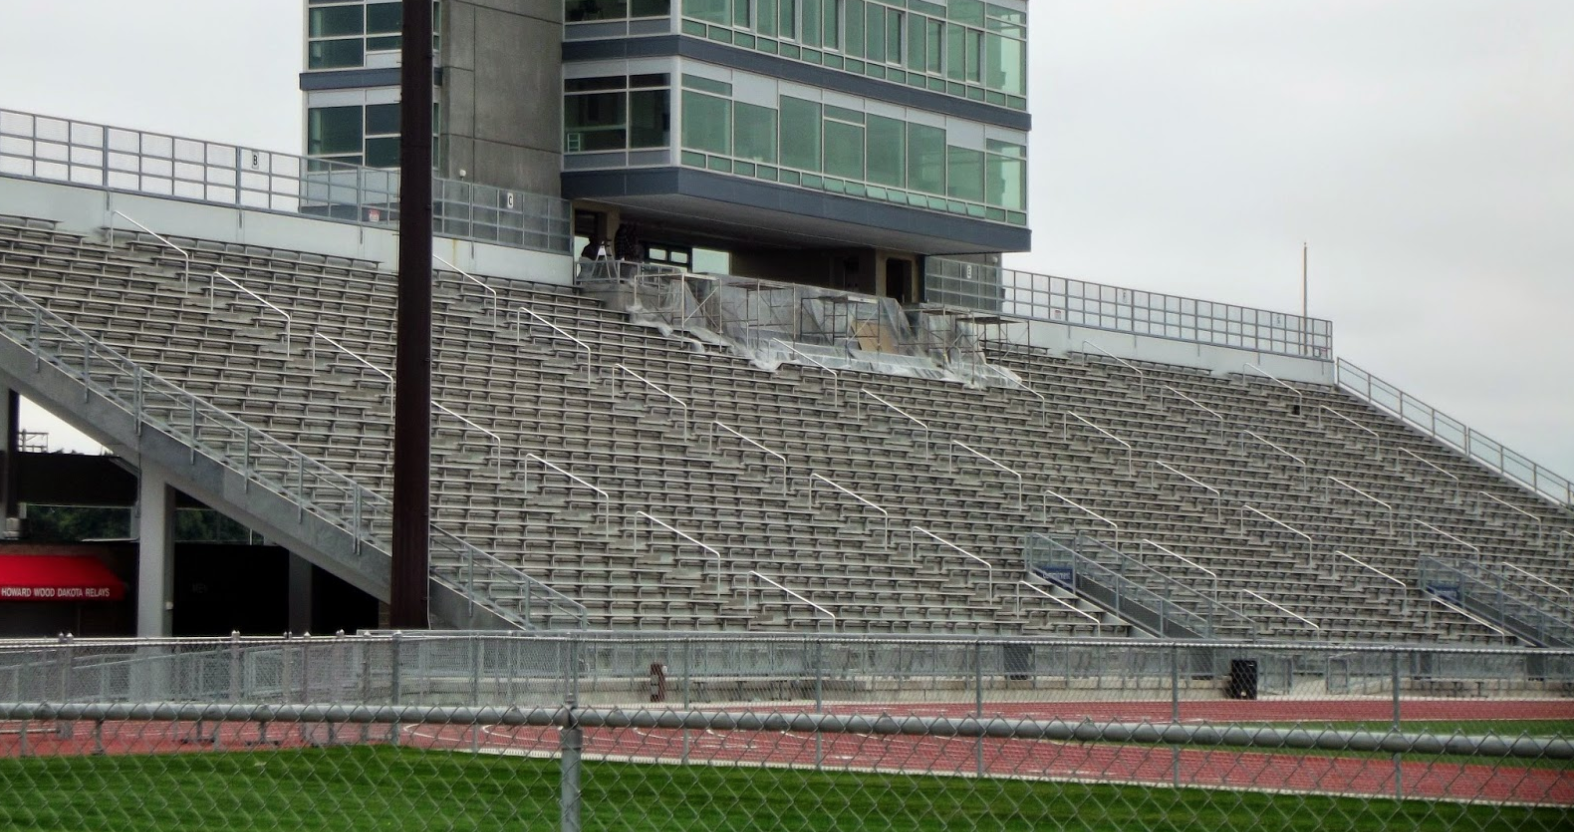 Sioux Falls football stadium